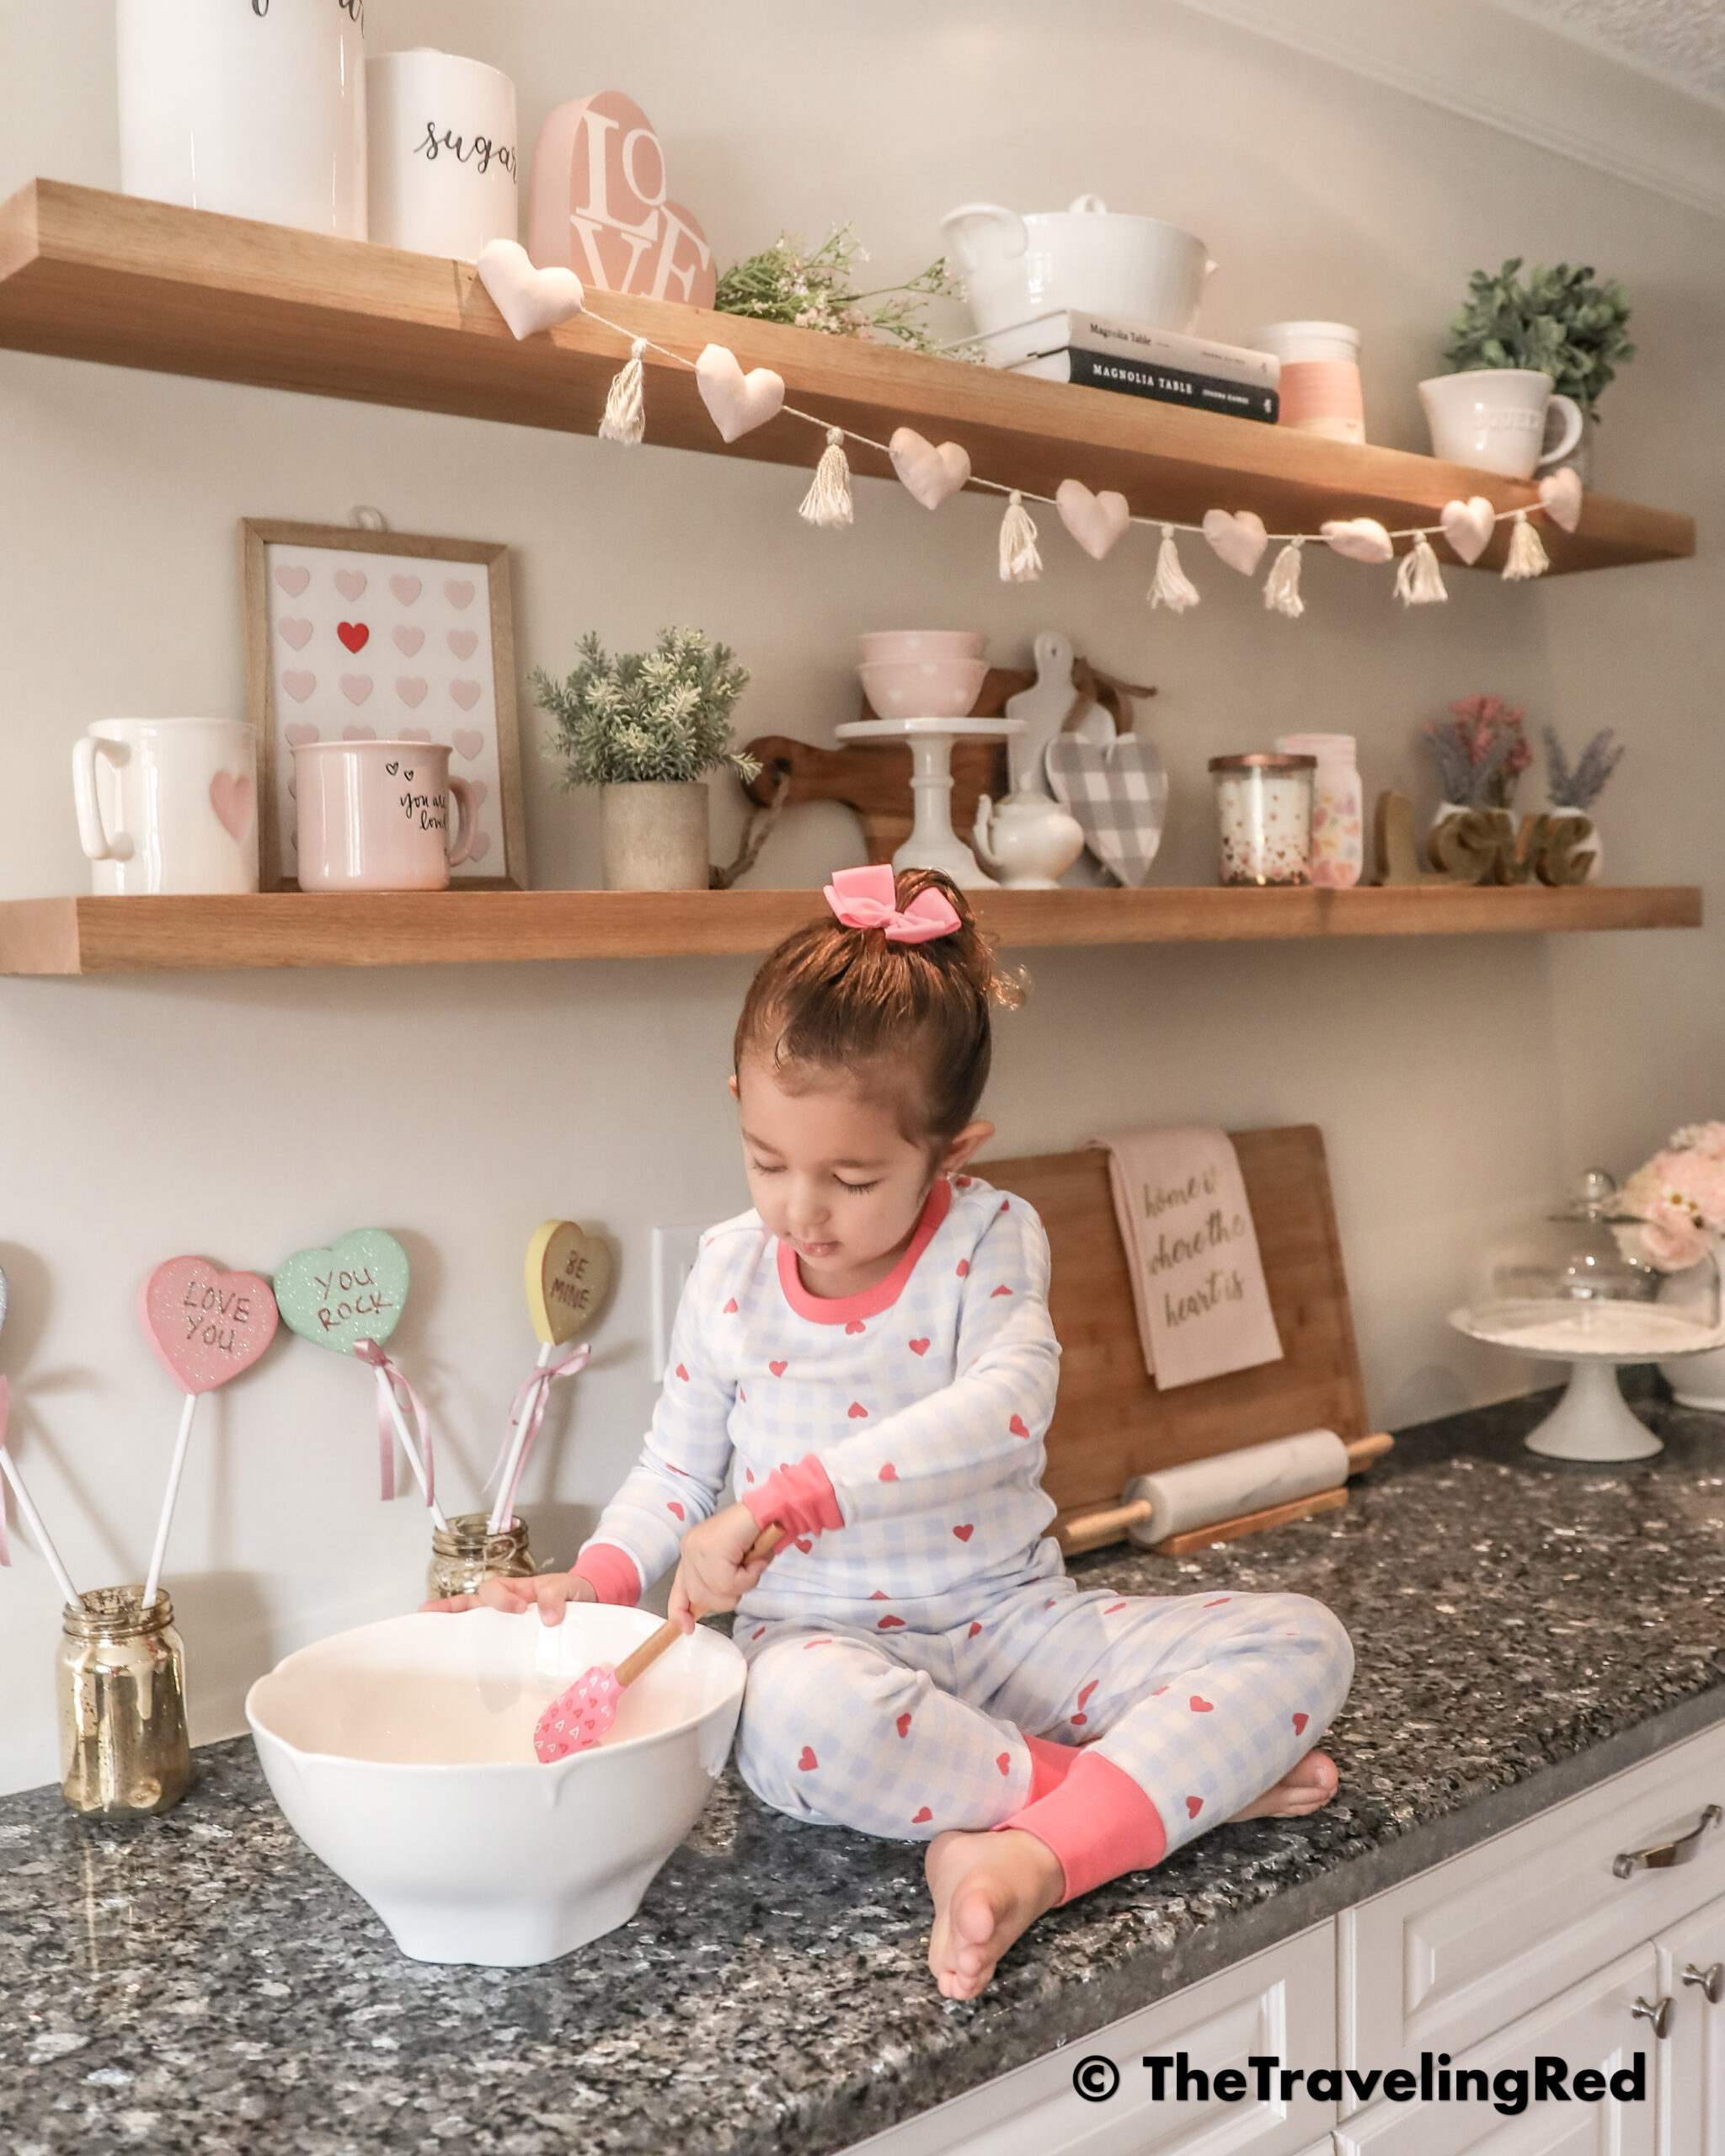 Mom Hack: Instead of asking your kid to pose for a photo, just give them a task to keep them busy. It can be anything like stirring in a bowl. Make them focus so you can photograph them #MomHacks #KidPhotography #MomTips #Toddlers #PhotographyTips